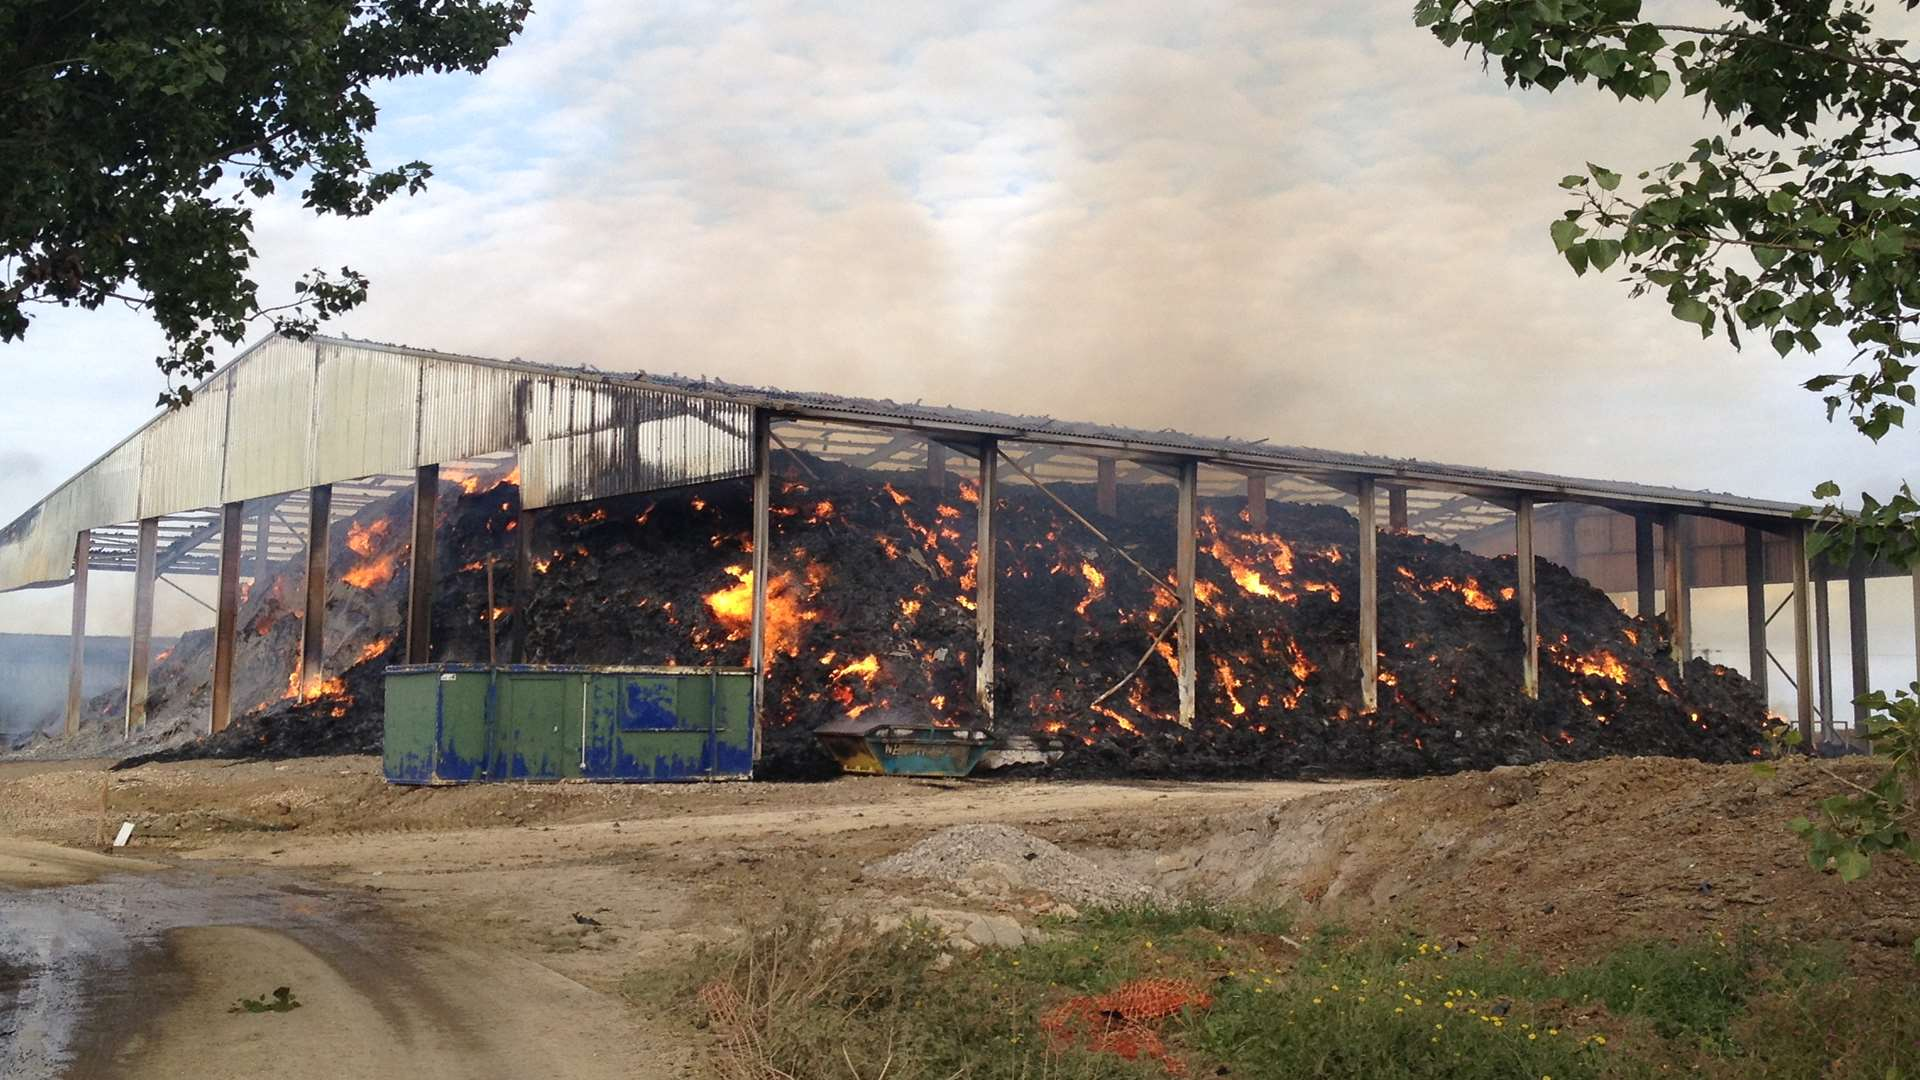 The barn blaze in Lower Road, Minster, on the Isle of Sheppey